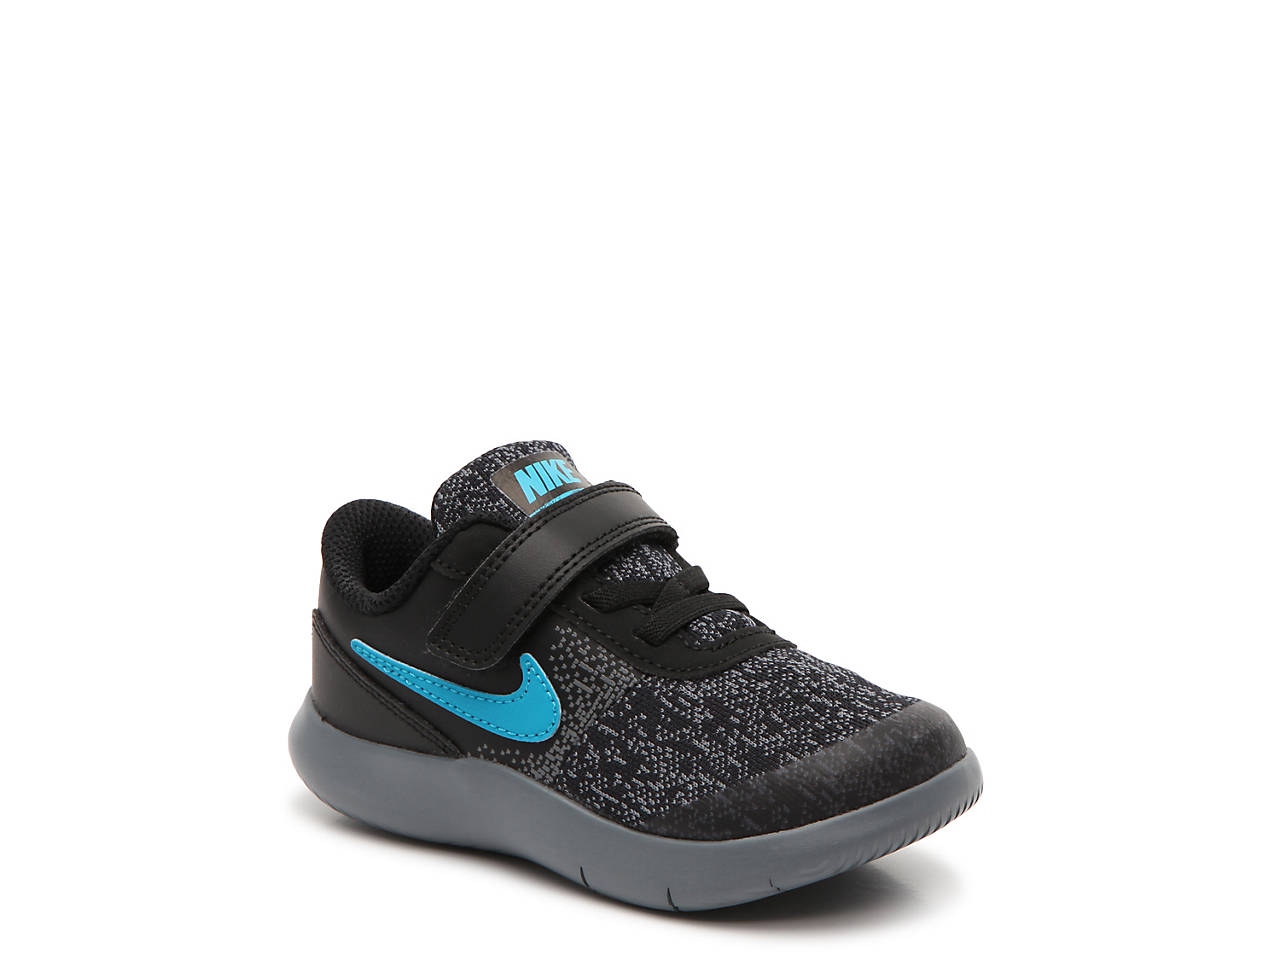 cb37327cbd1 Nike Flex Contact Infant   Toddler Running Shoe Kids Shoes